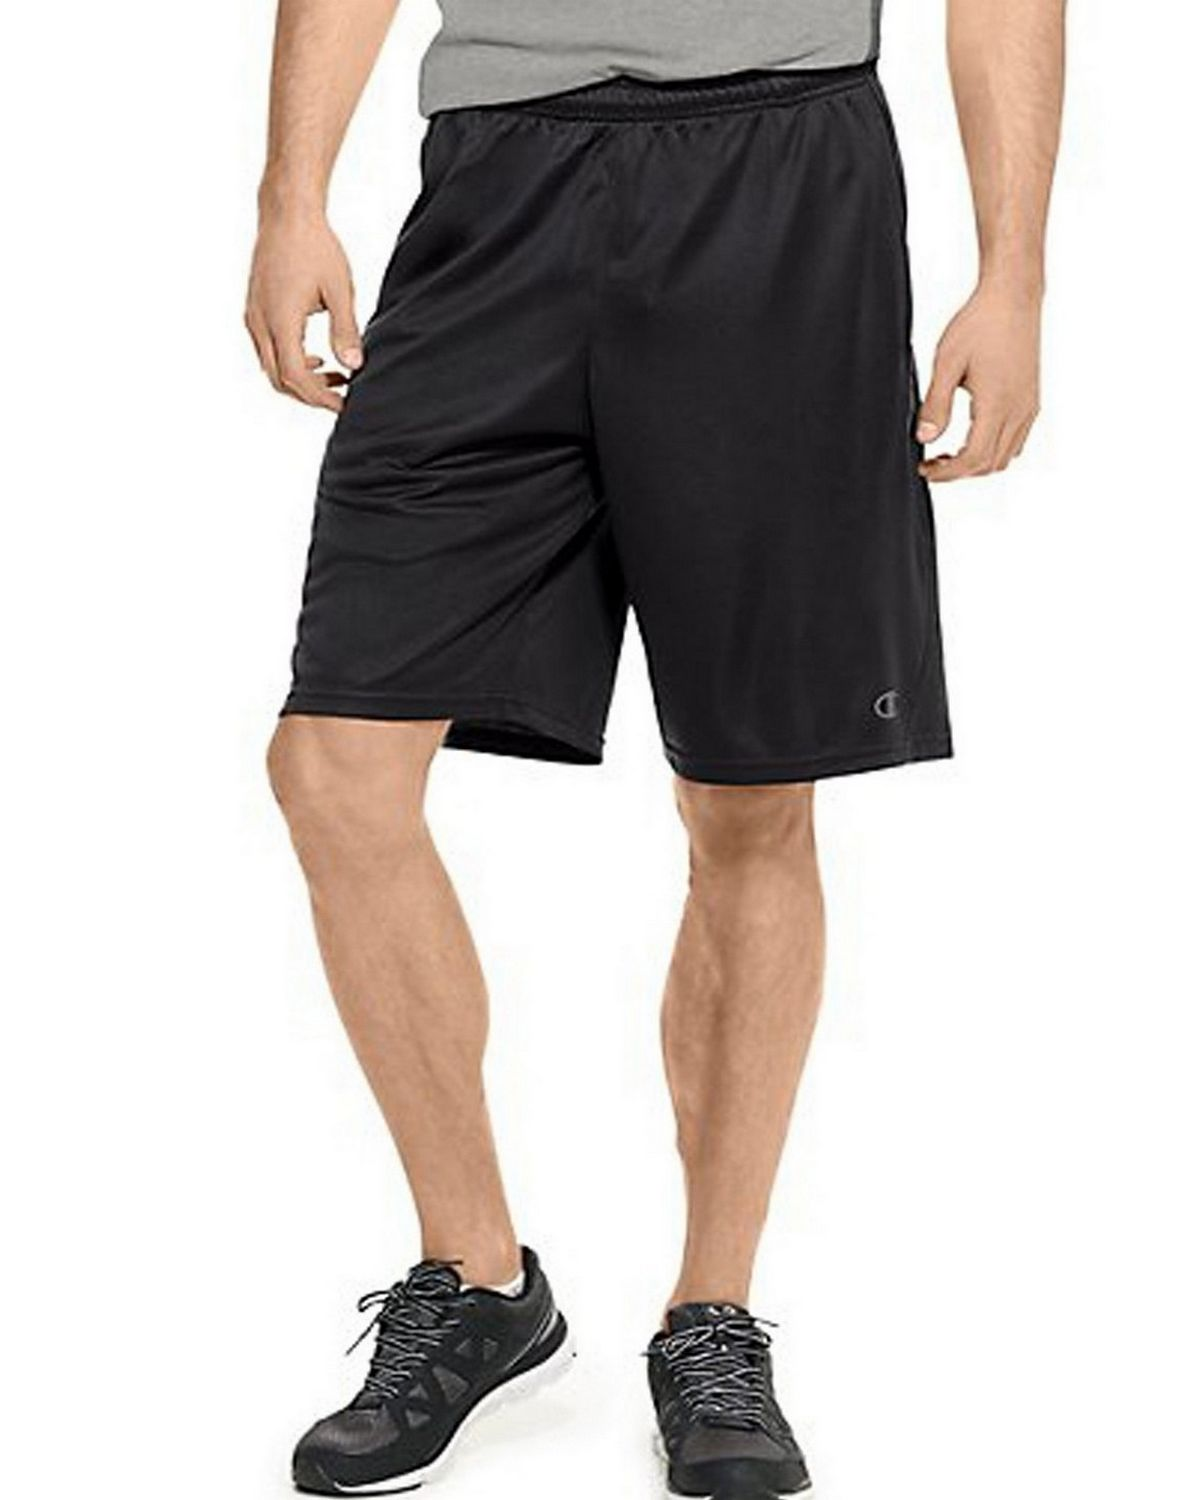 Champion 86703 Vapor PowerTrain Knit Shorts - Black - XL 86703